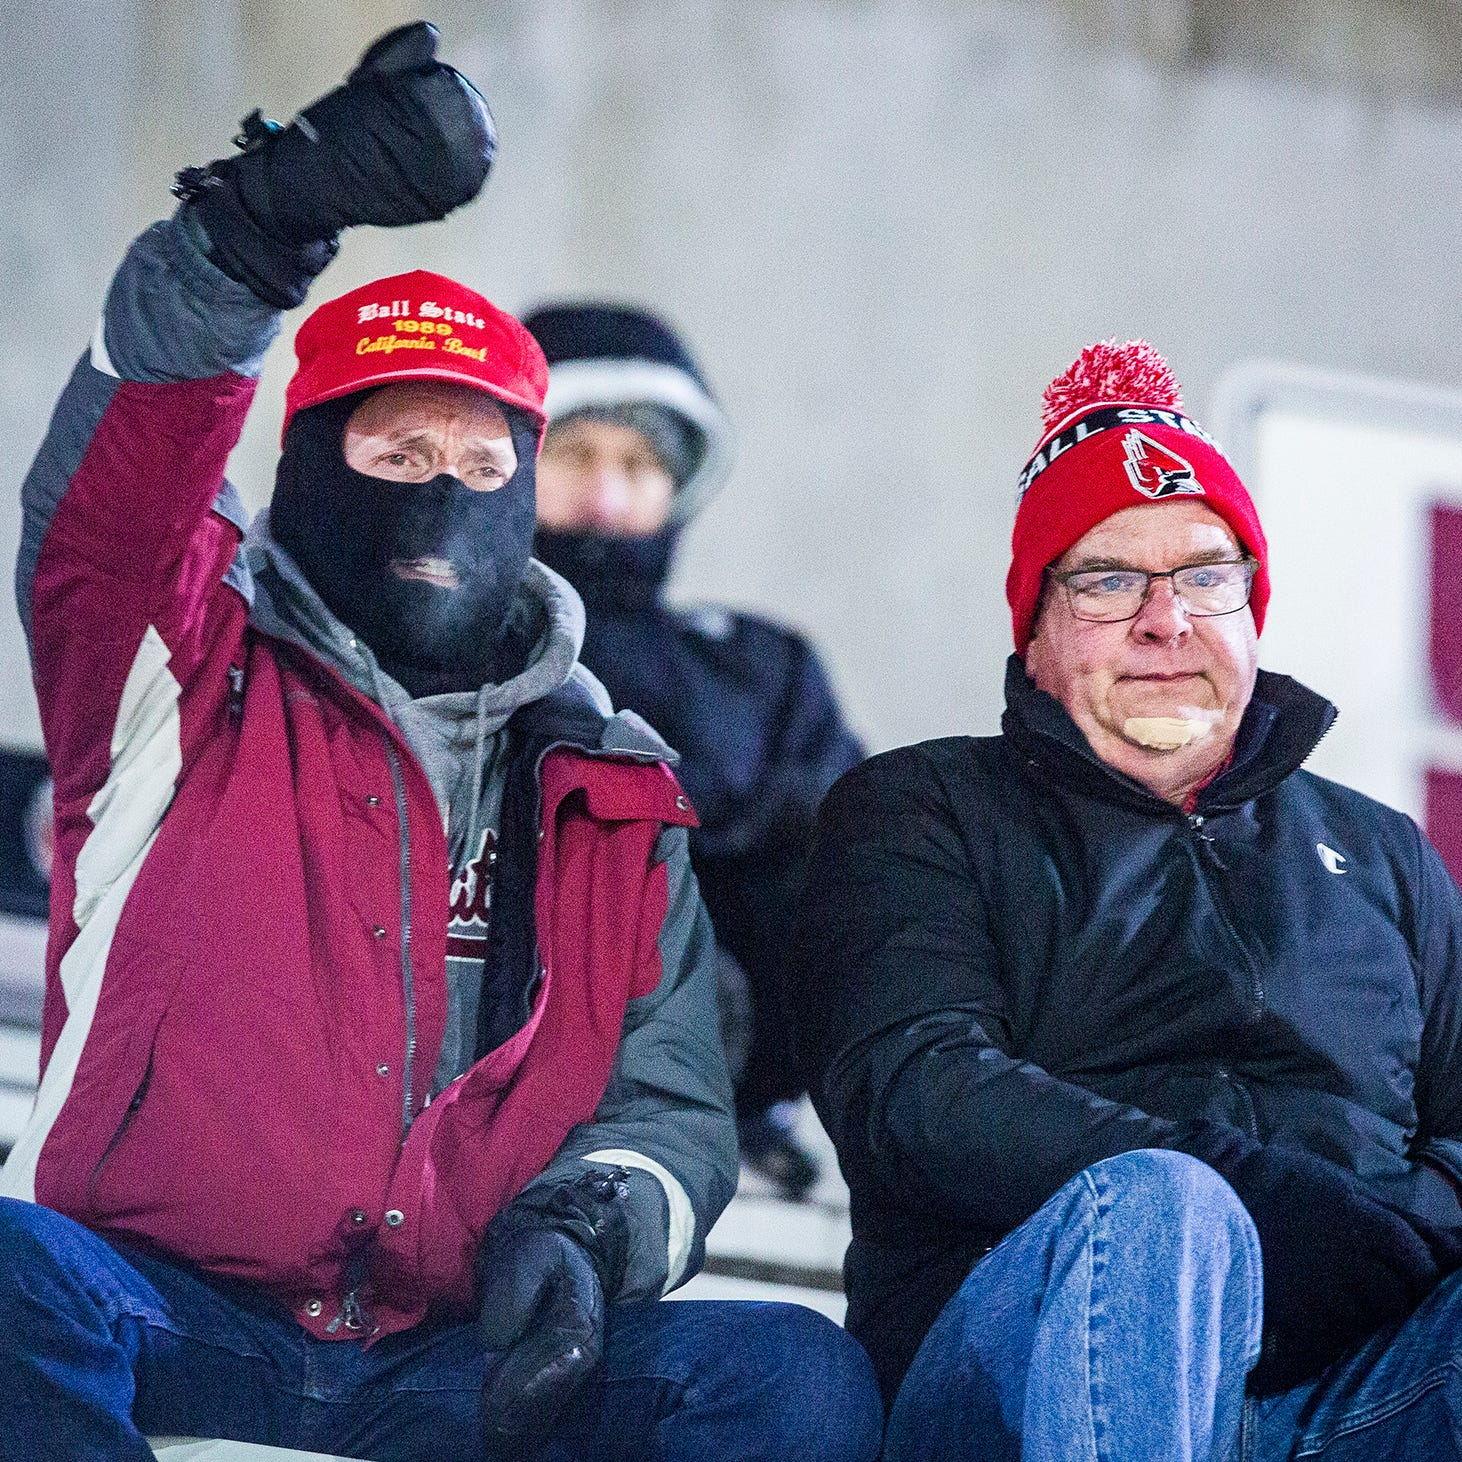 Inside the pride and passion of Ball State football fans during a challenging season